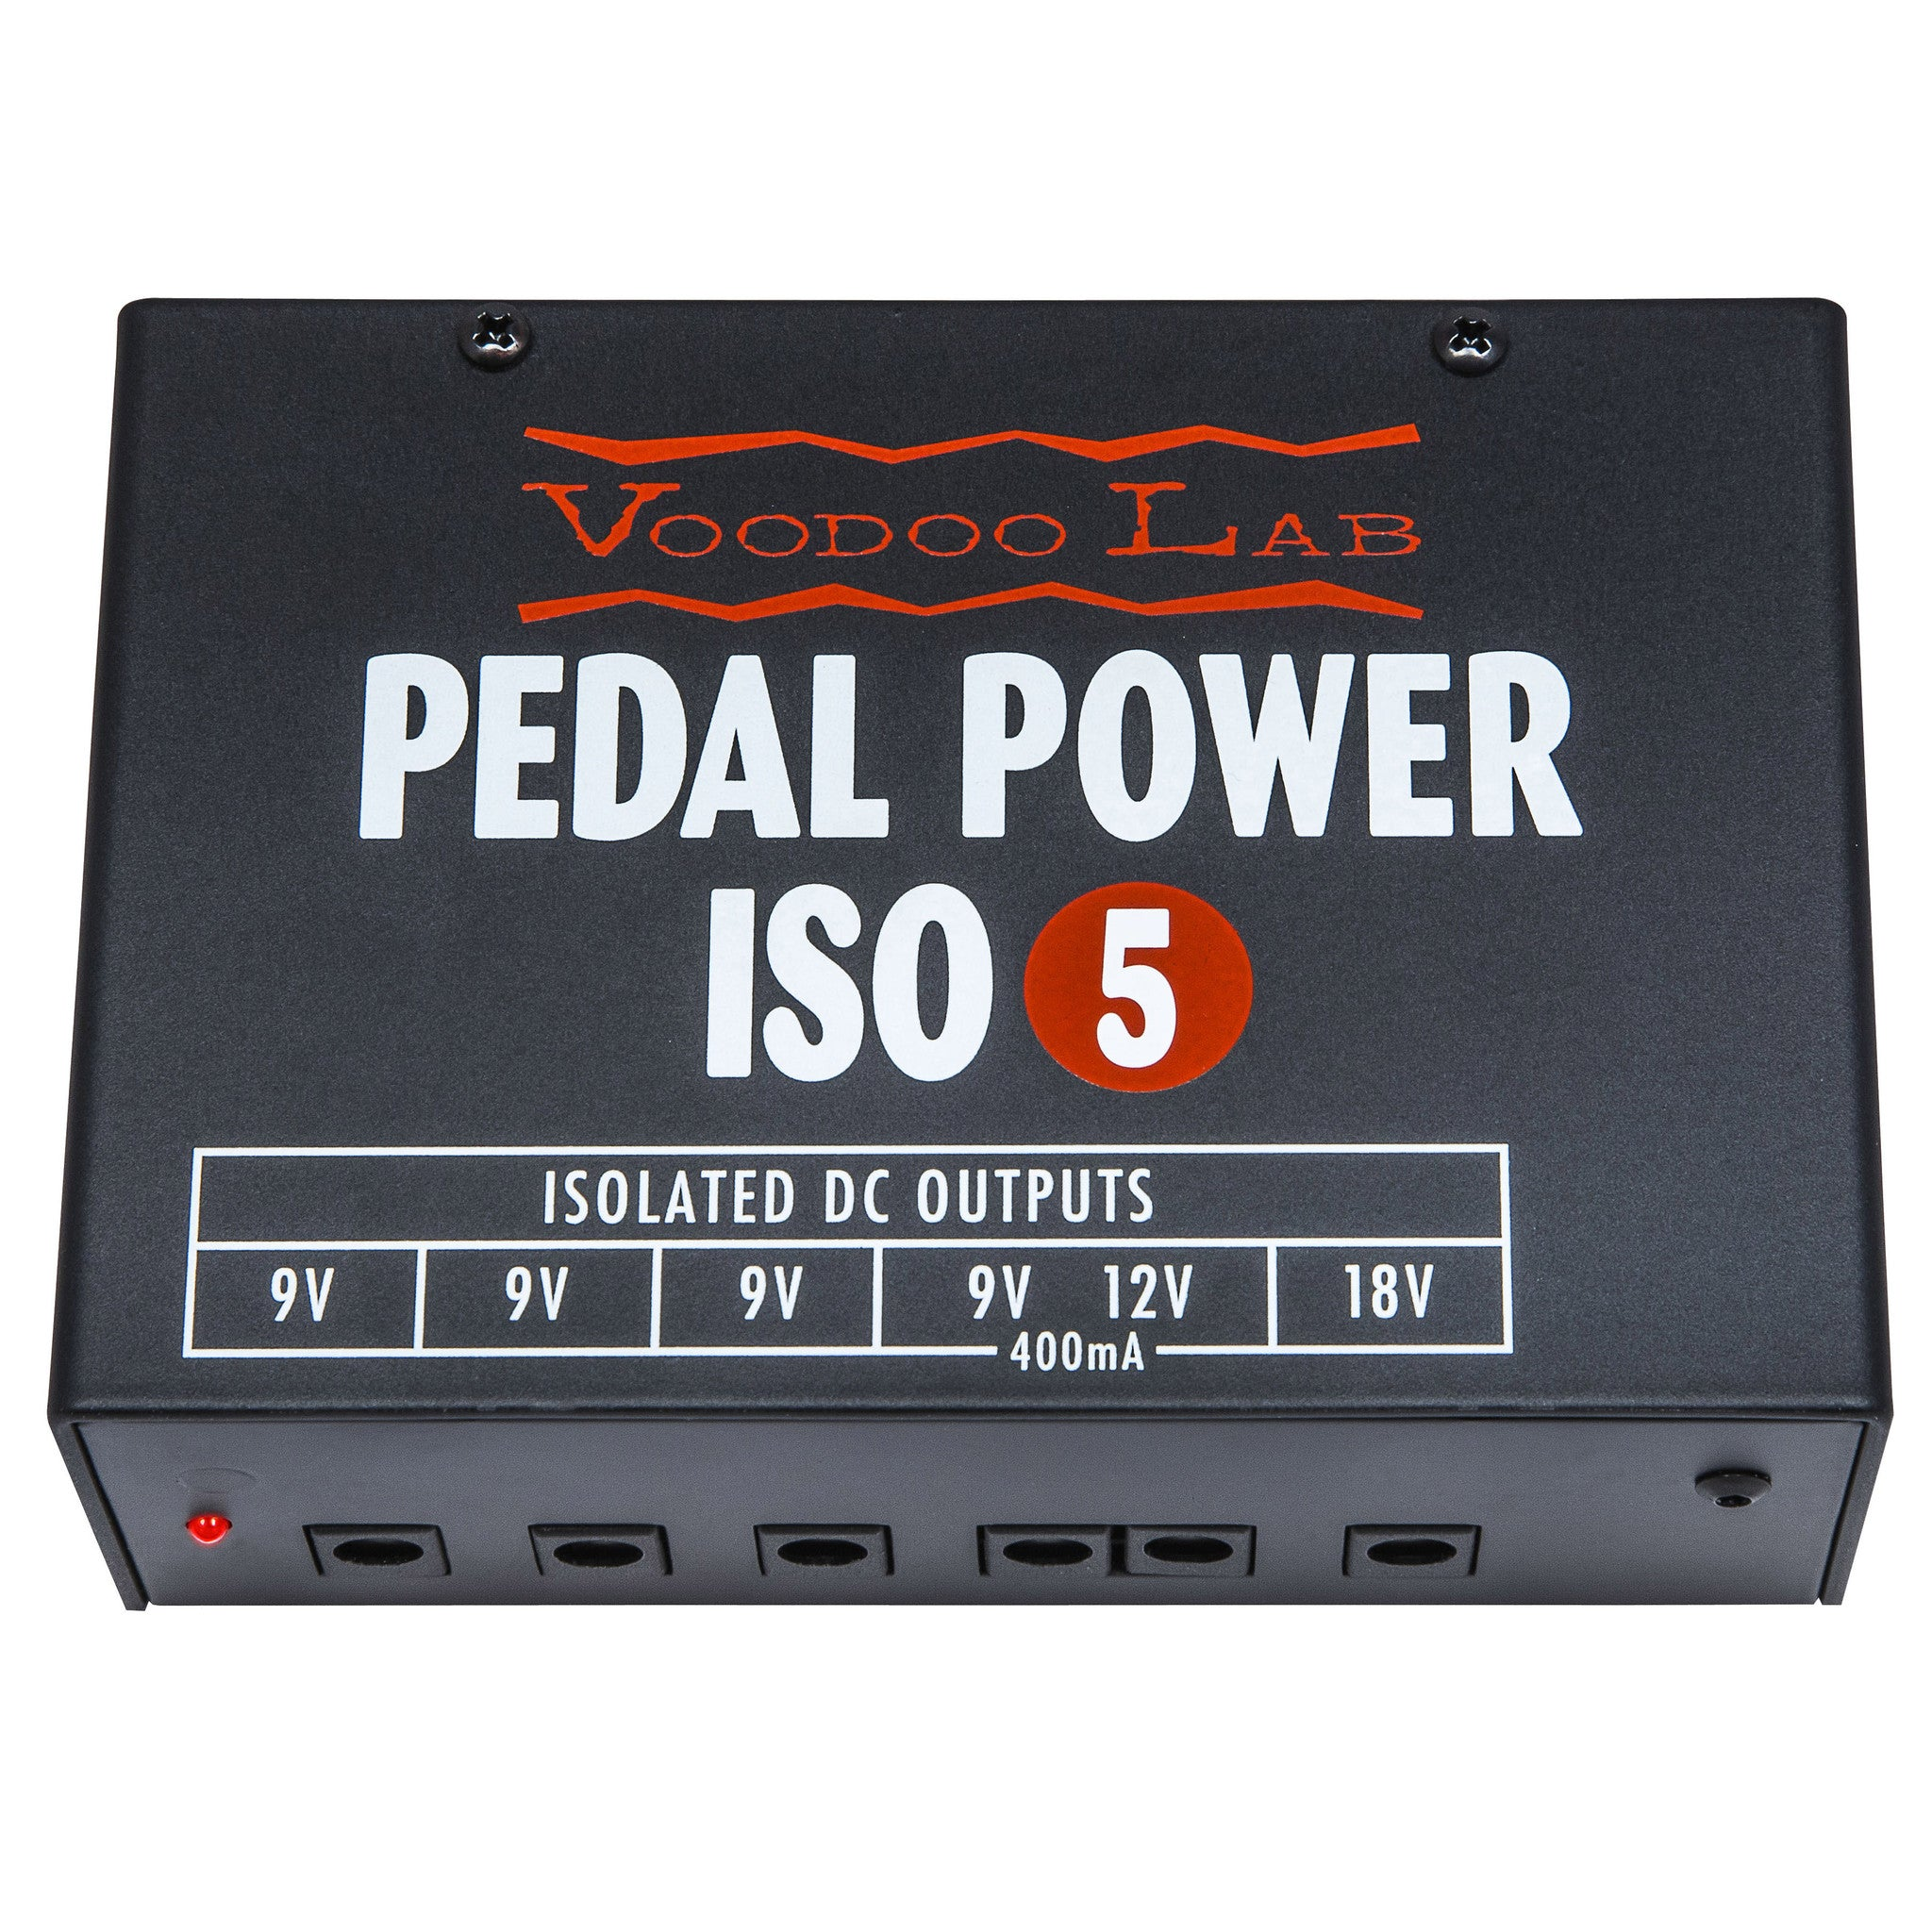 Shop online for Voodoo Labs Pedal Power ISO5 today.  Now available for purchase from Midlothian Music of Orland Park, Illinois, USA